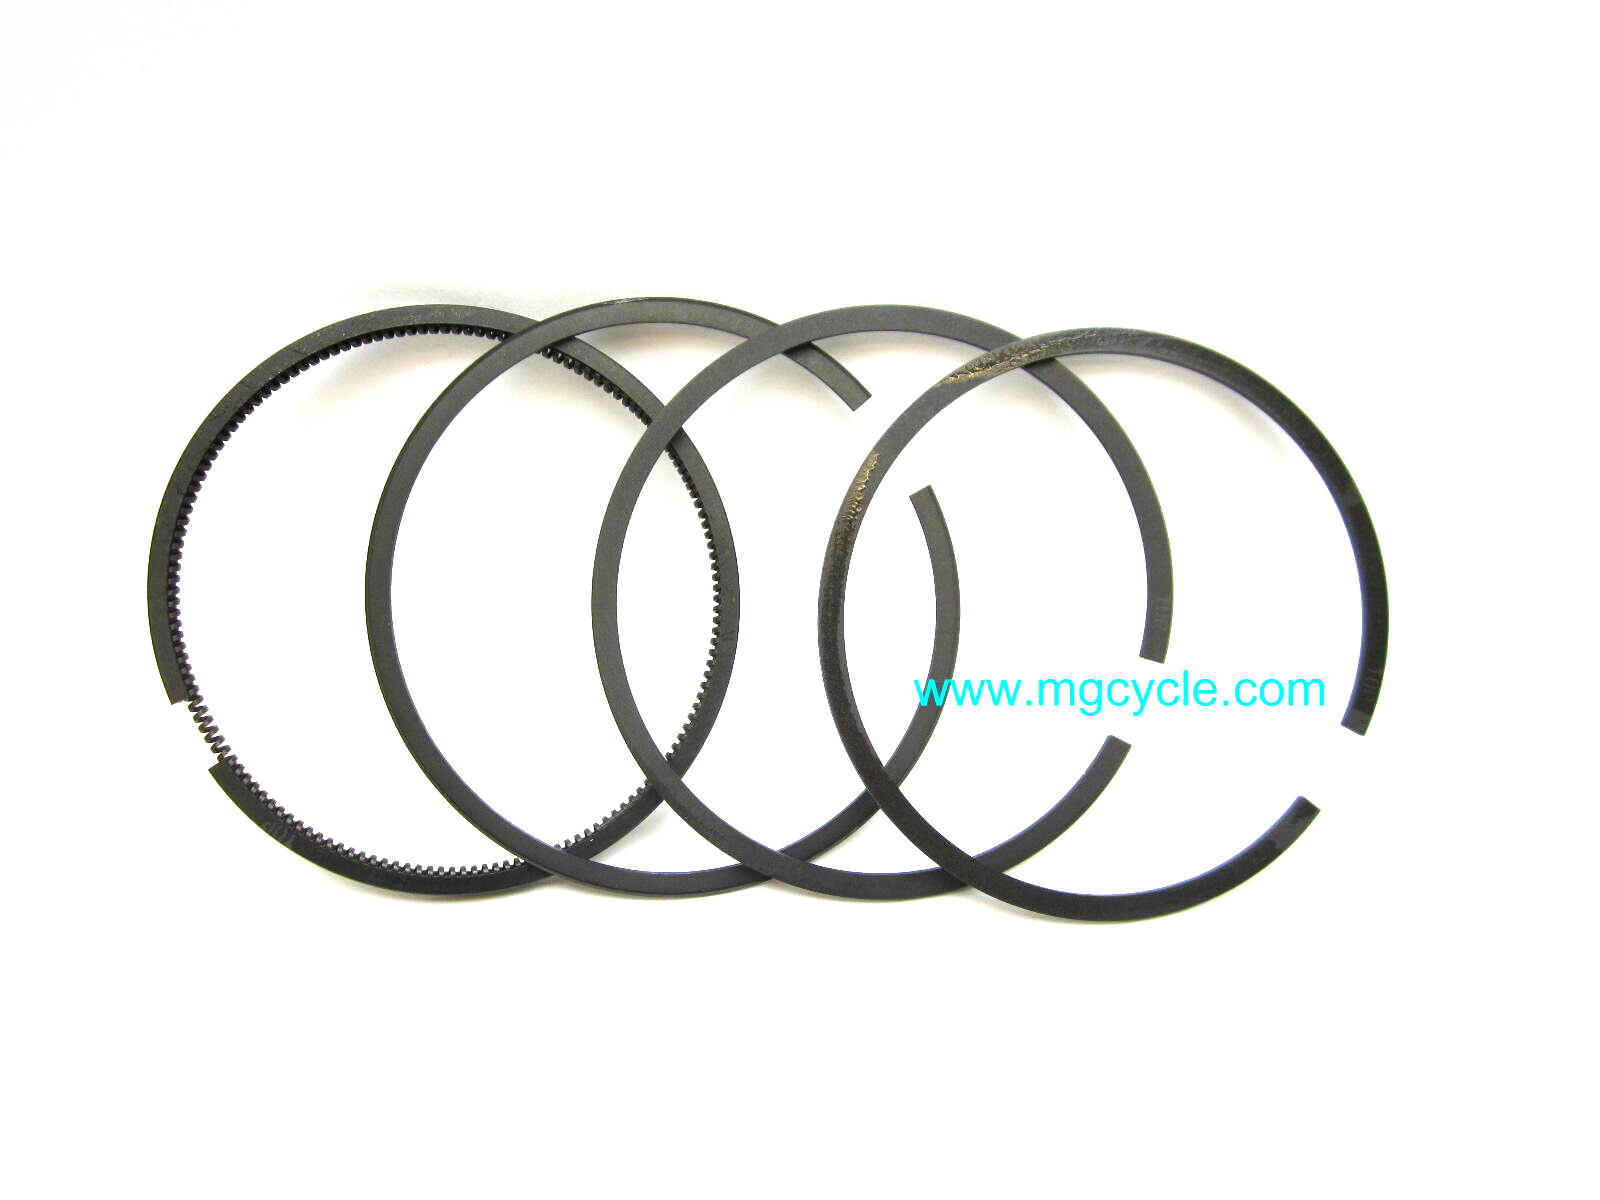 4 ring piston ring set, early 850T, T3